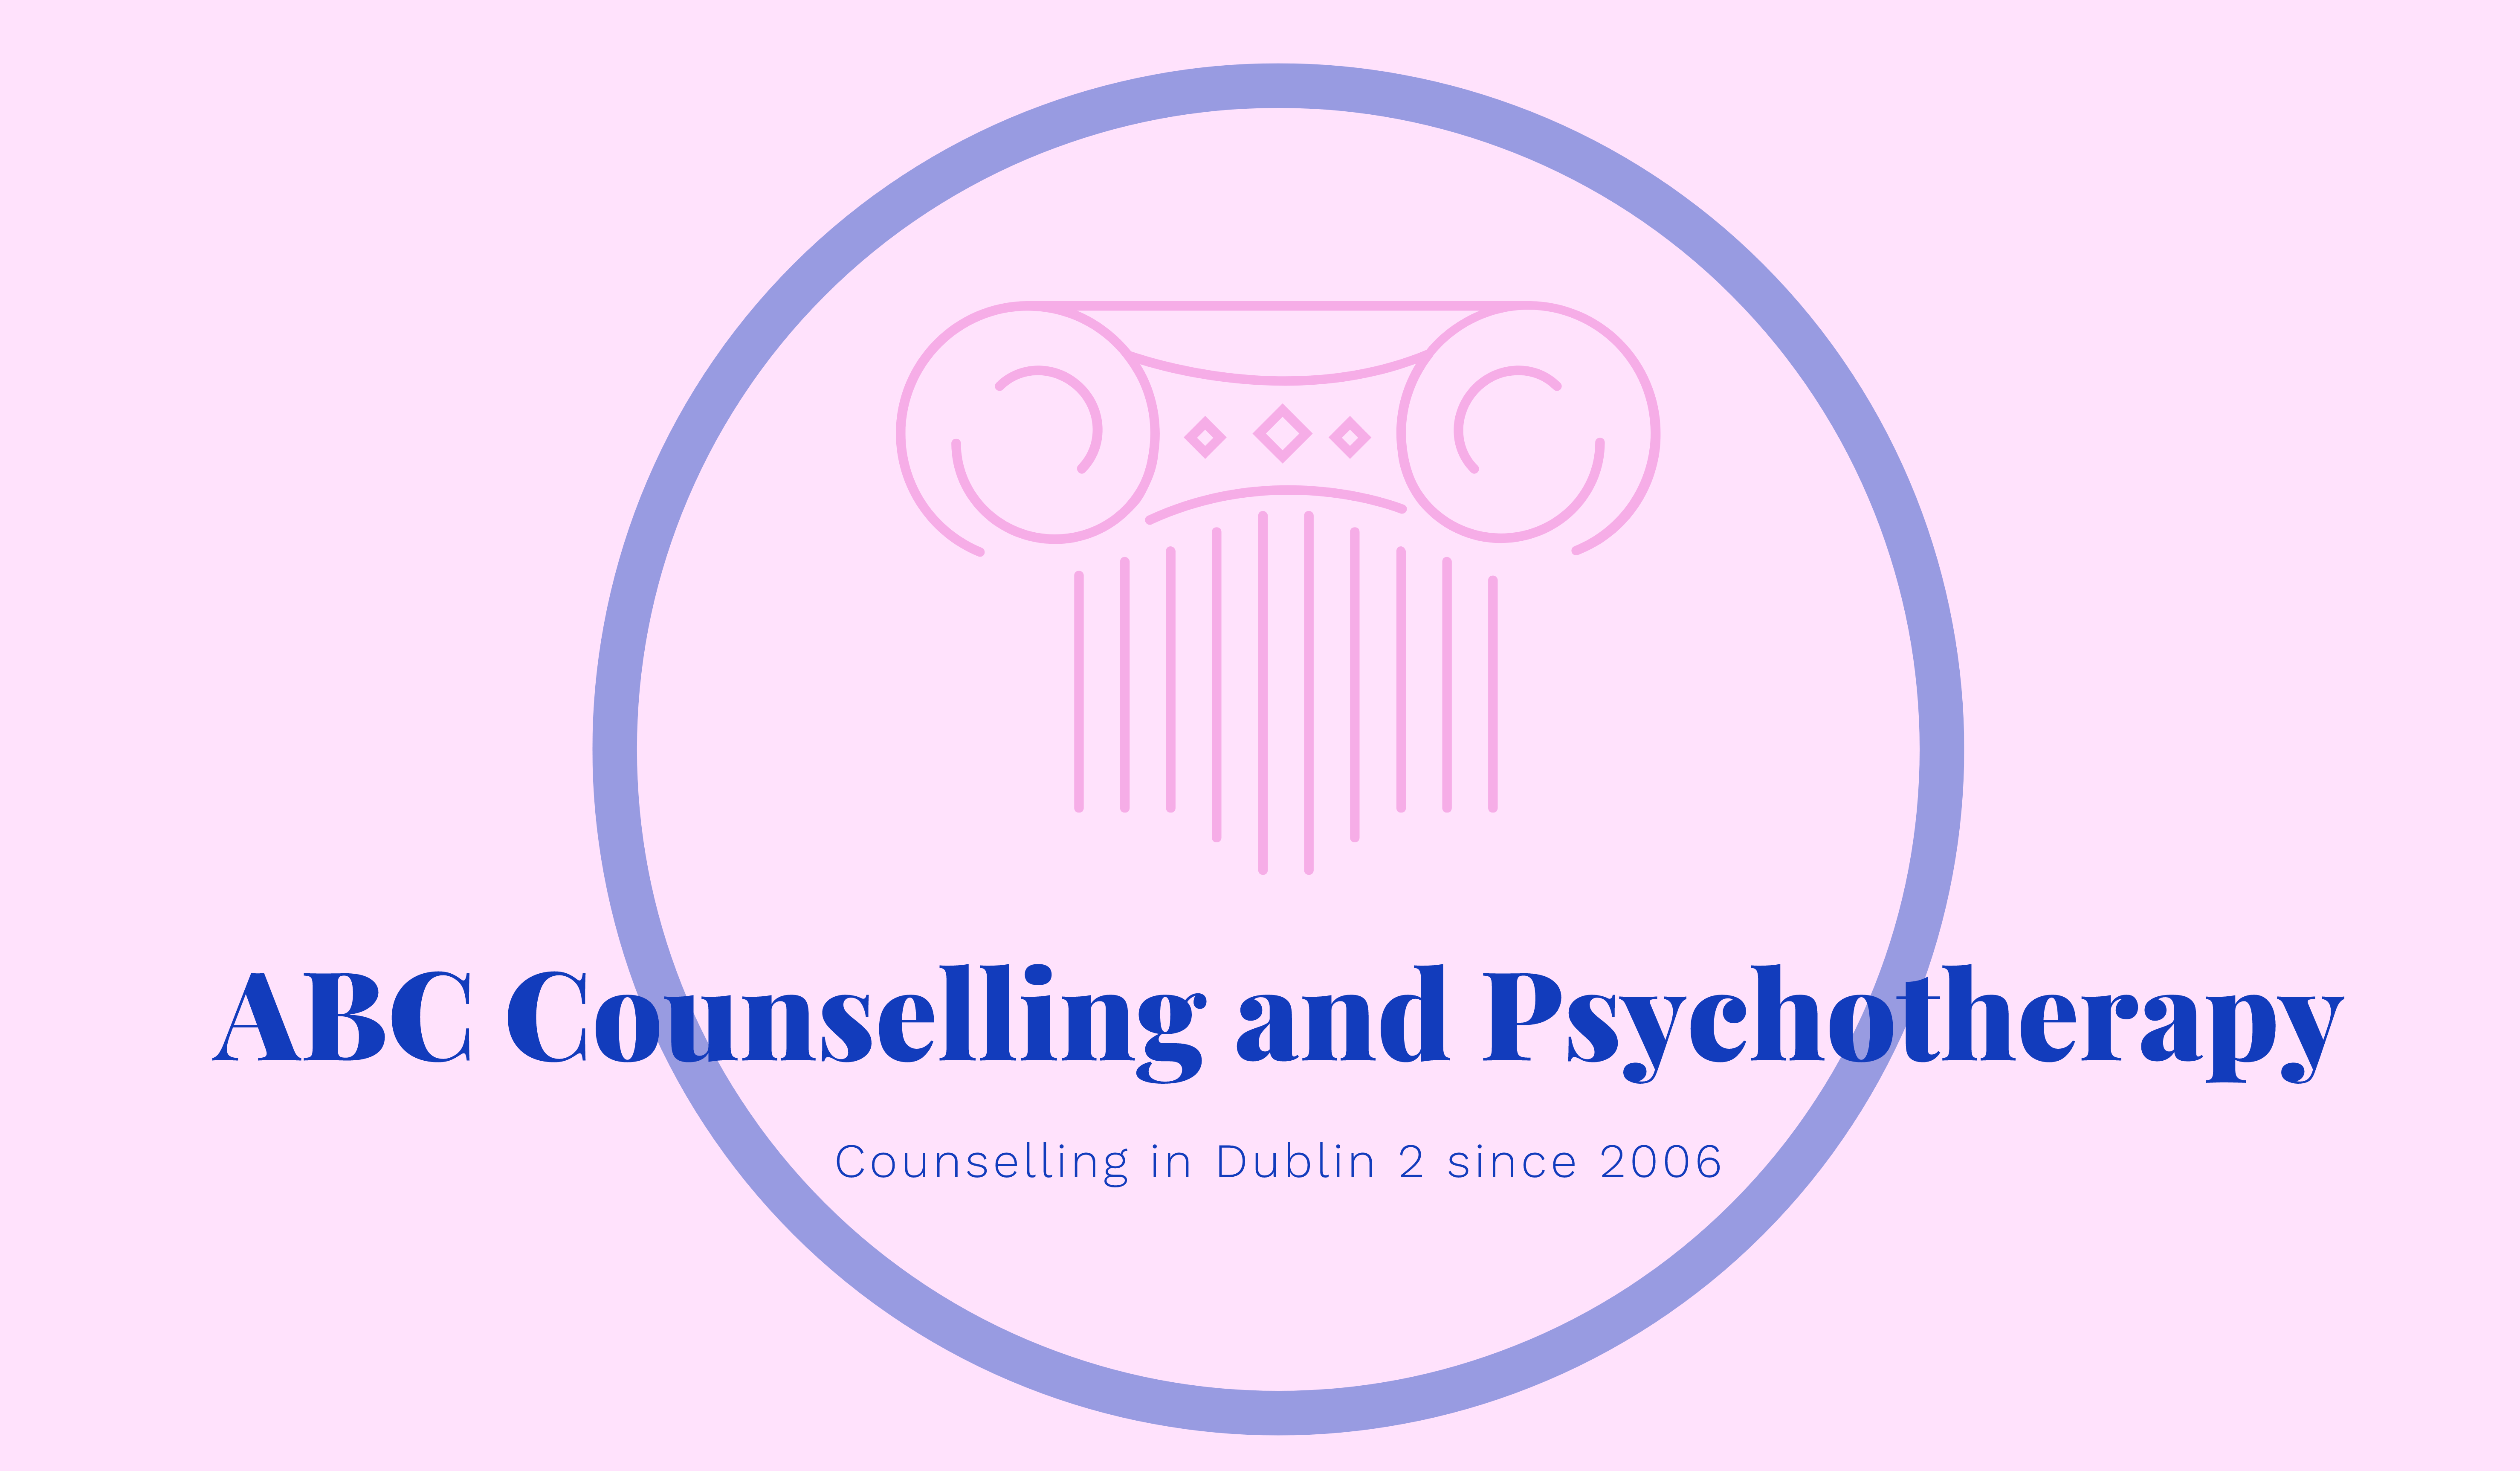 ABC Counselling and Psychotherapy Dublin 2